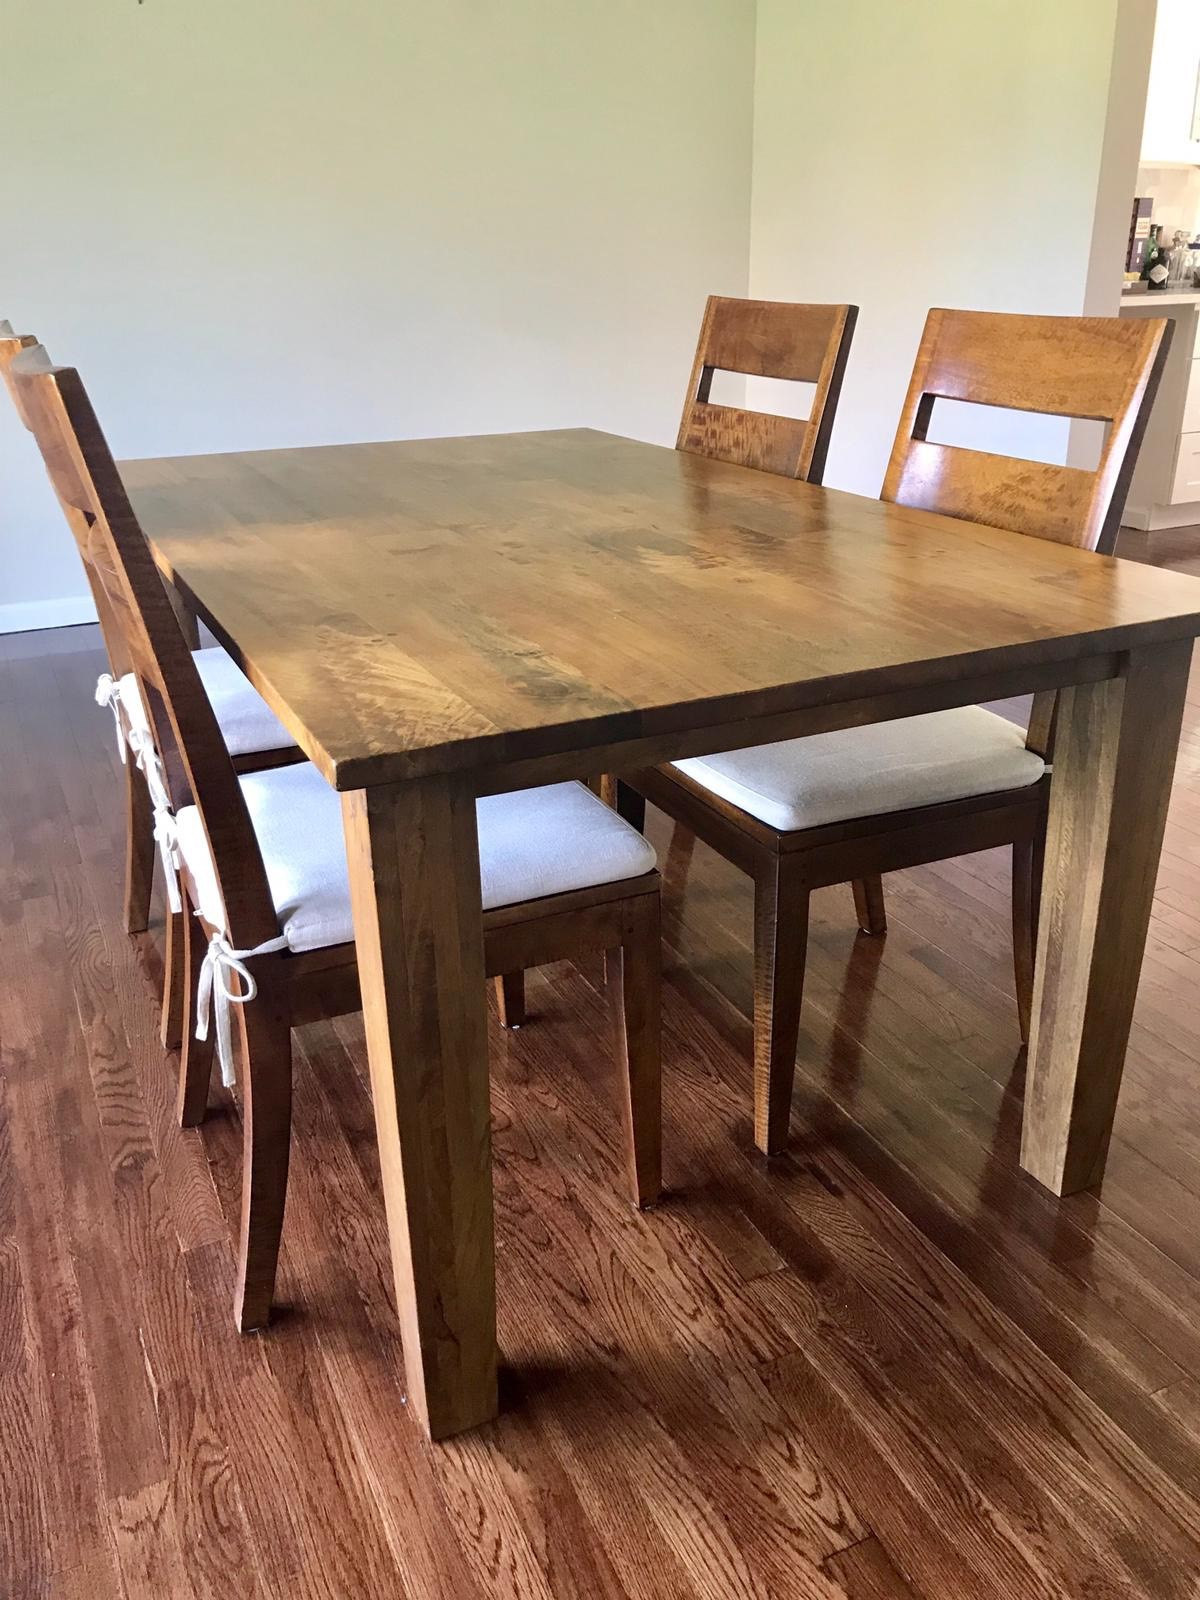 Crate & Barrel Basque Honey Dining Table w/ 4 Chairs